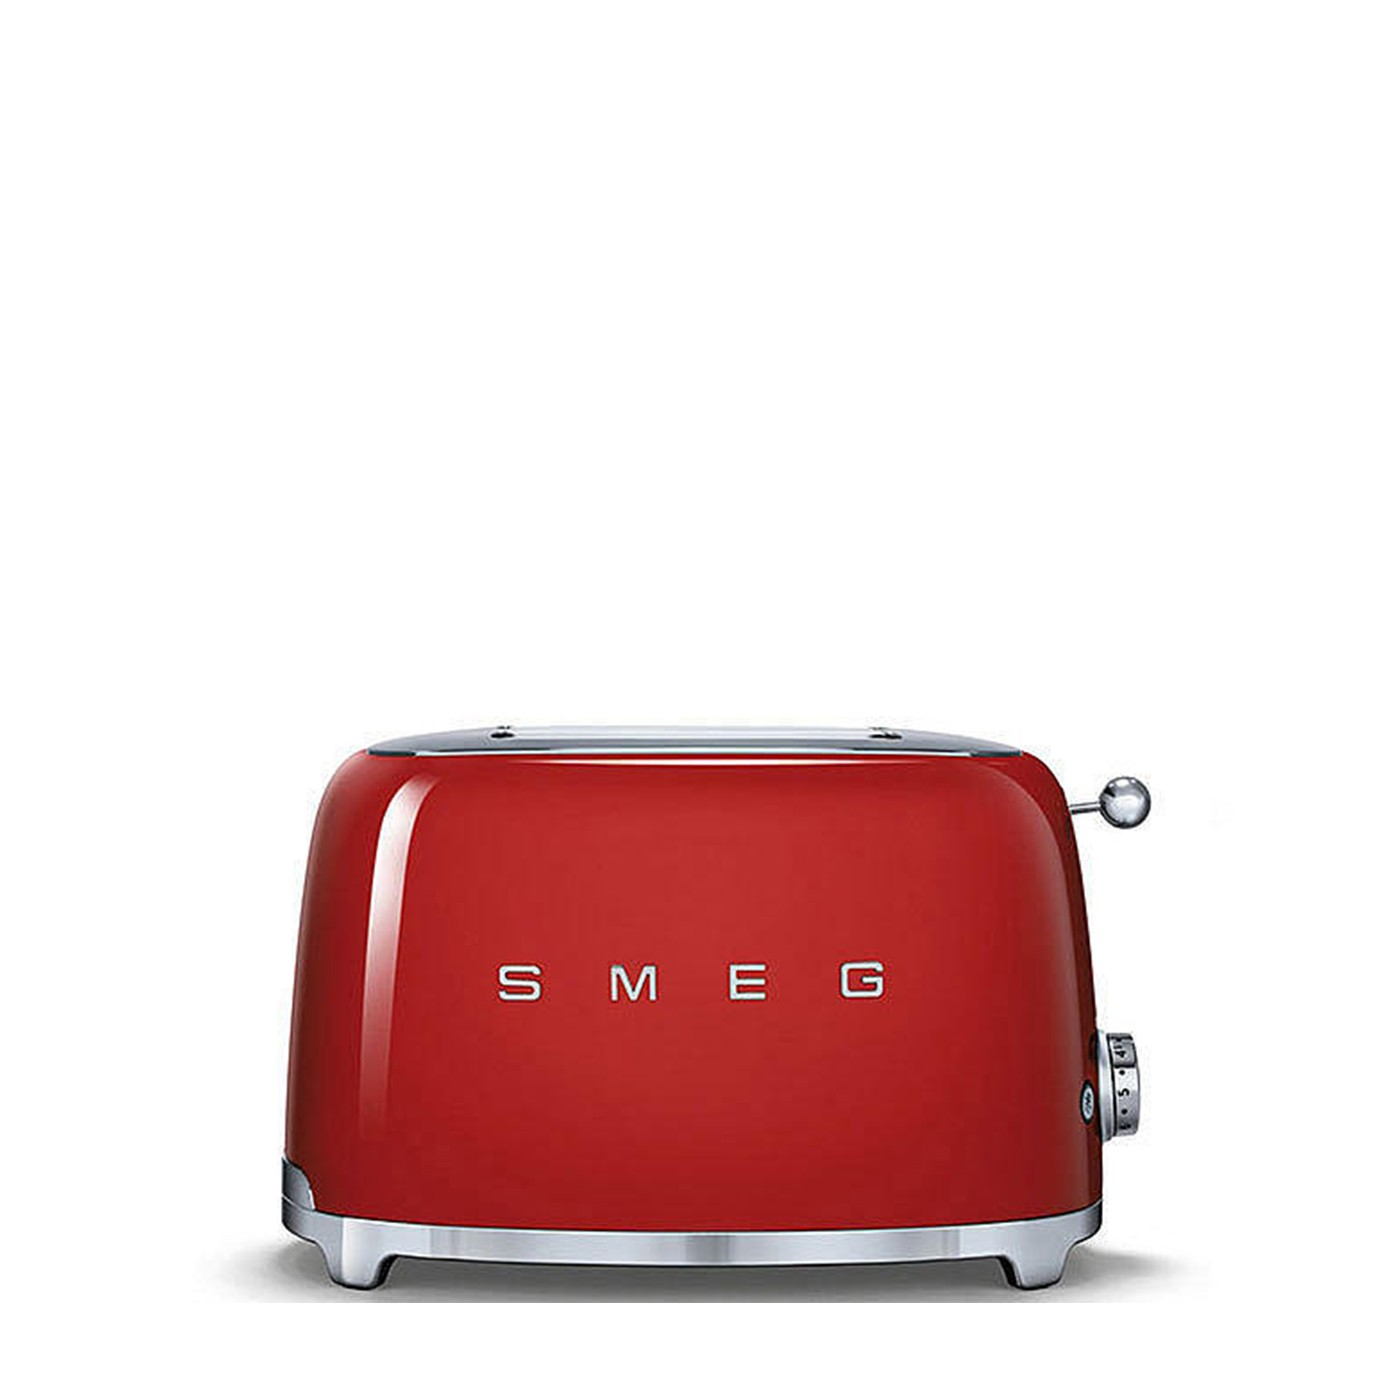 Red Toaster